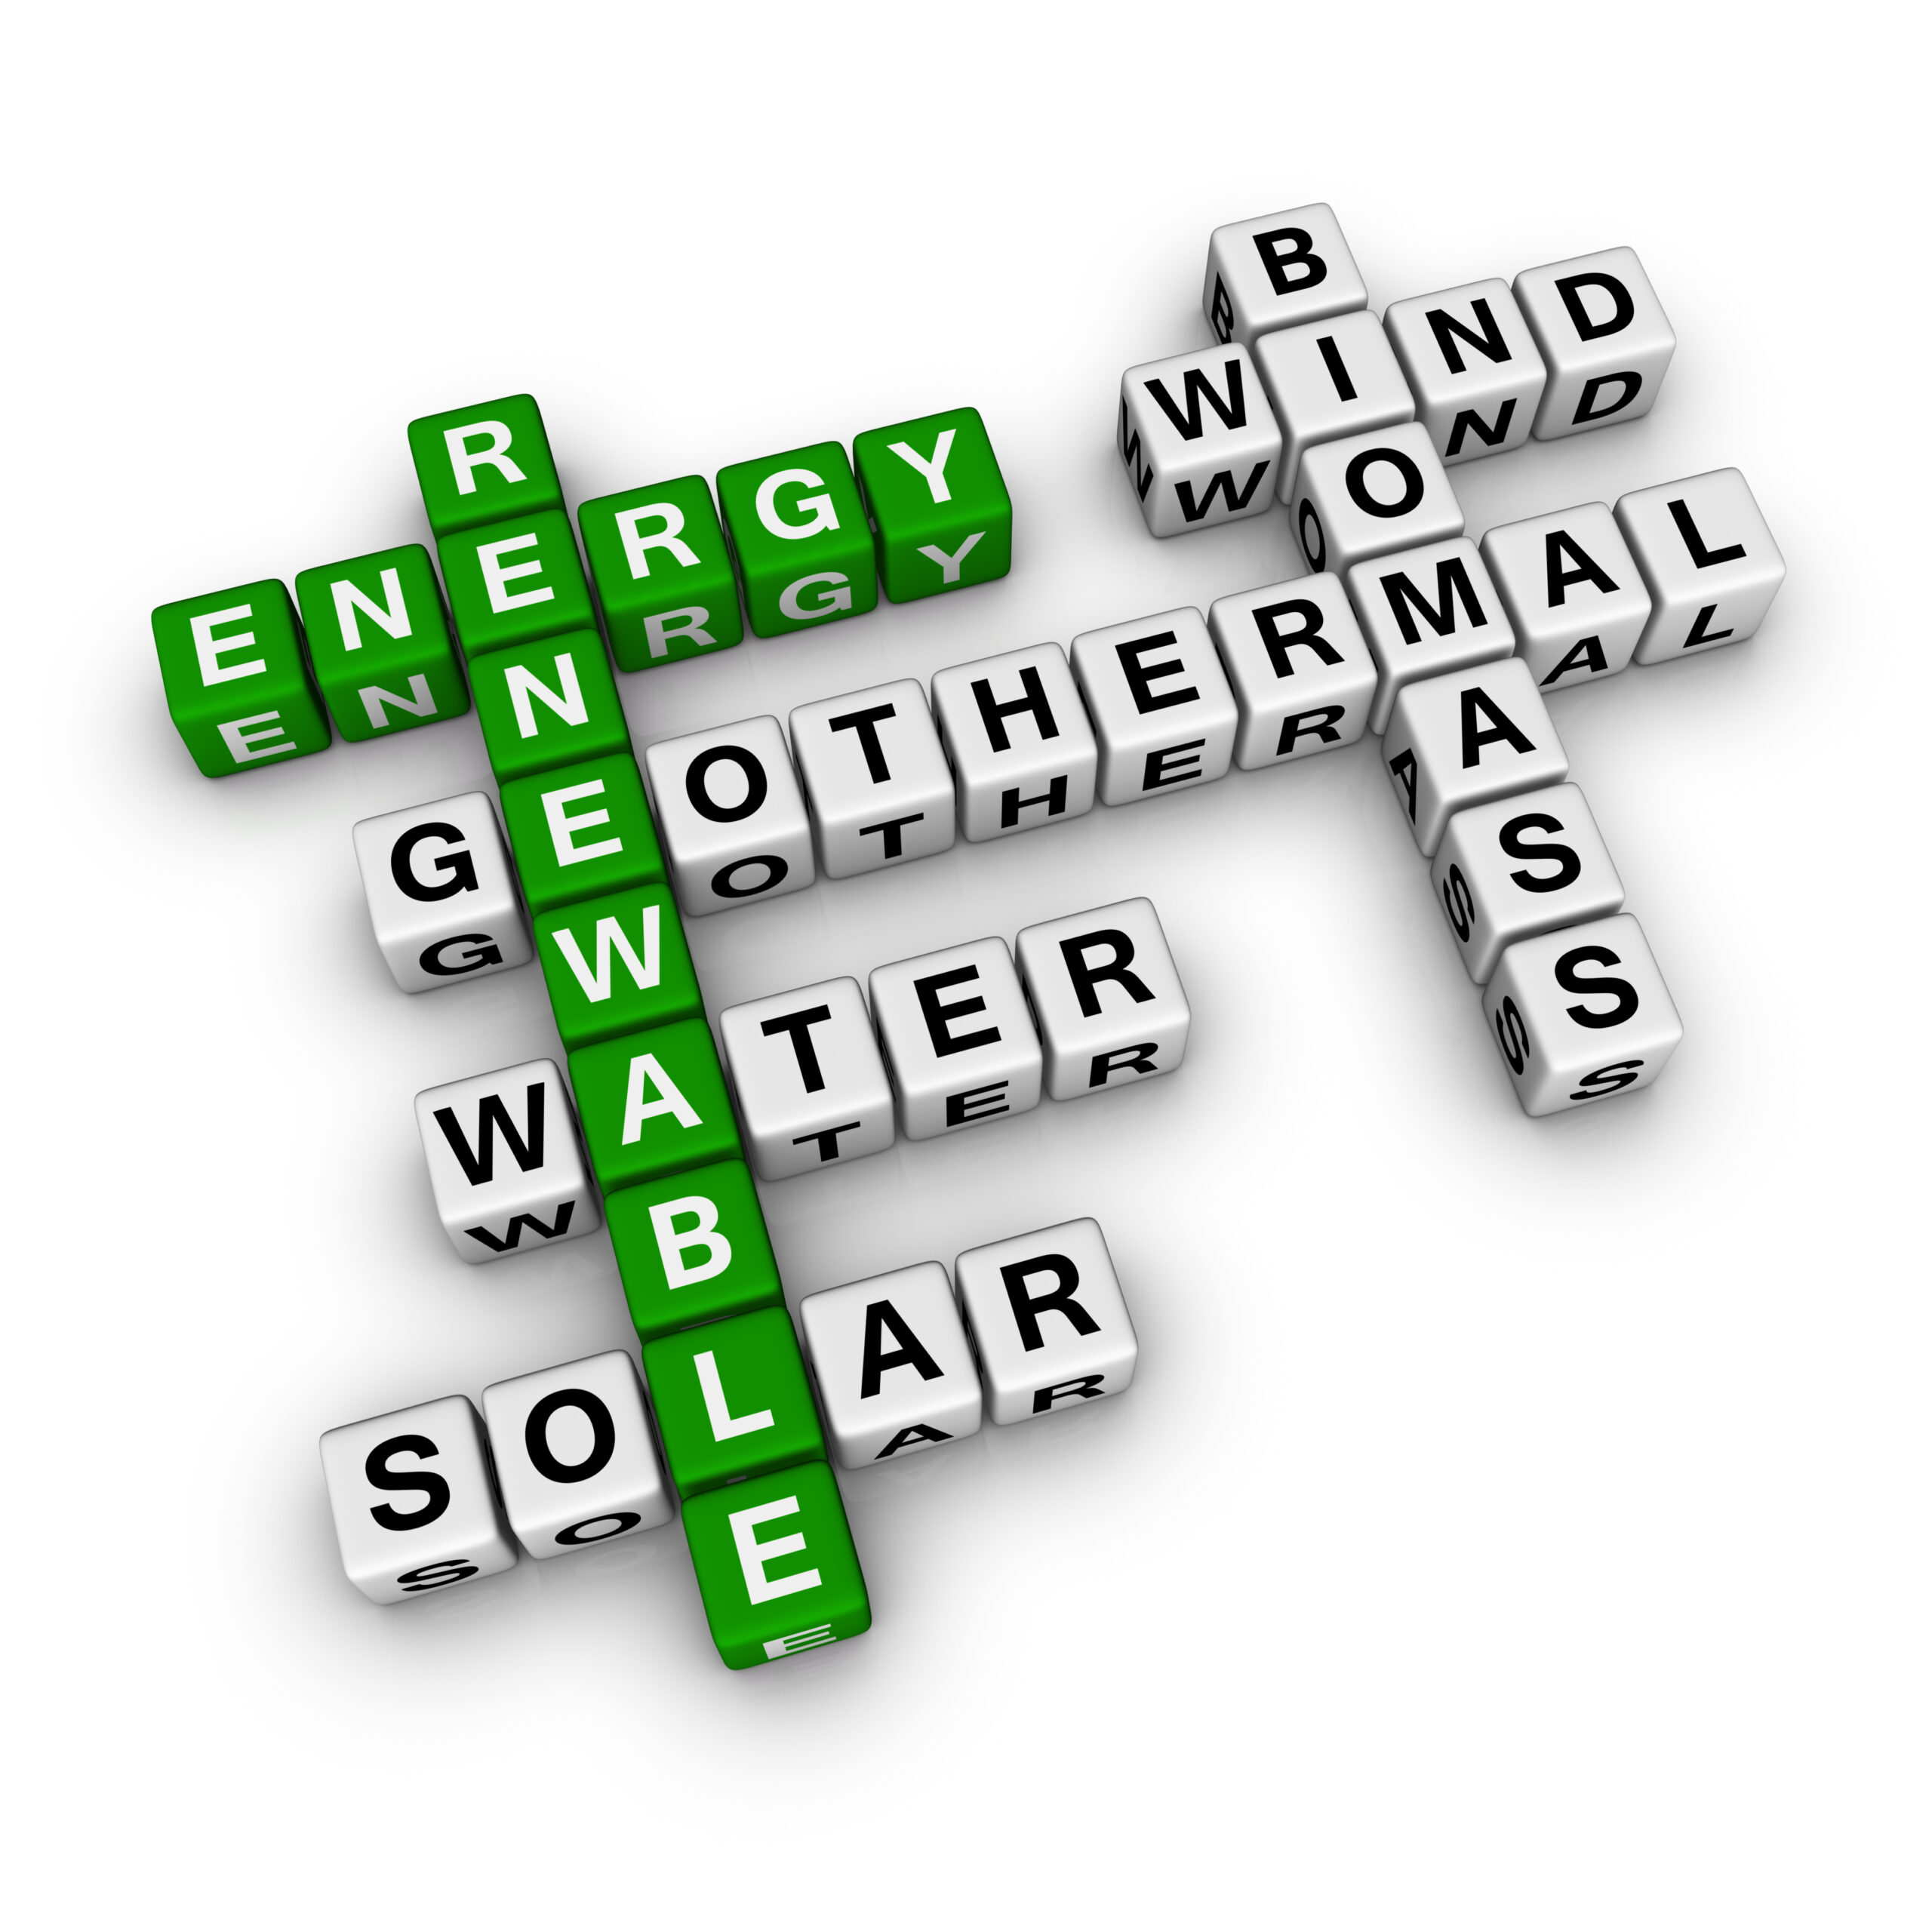 Don't Miss Out on Geothermal Savings through 2022